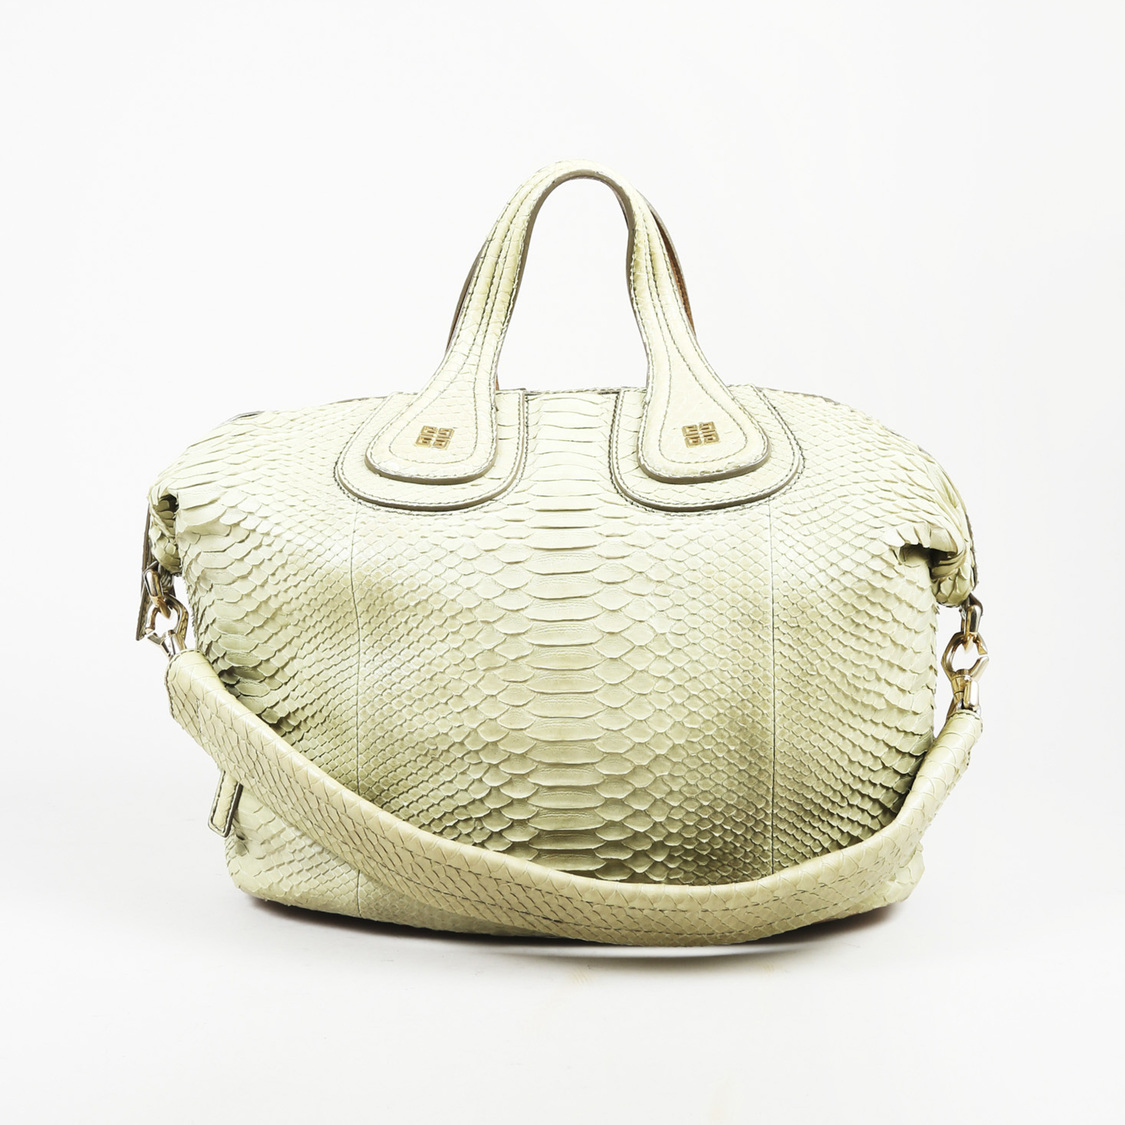 06def734e1 Details about Givenchy Snakeskin Medium